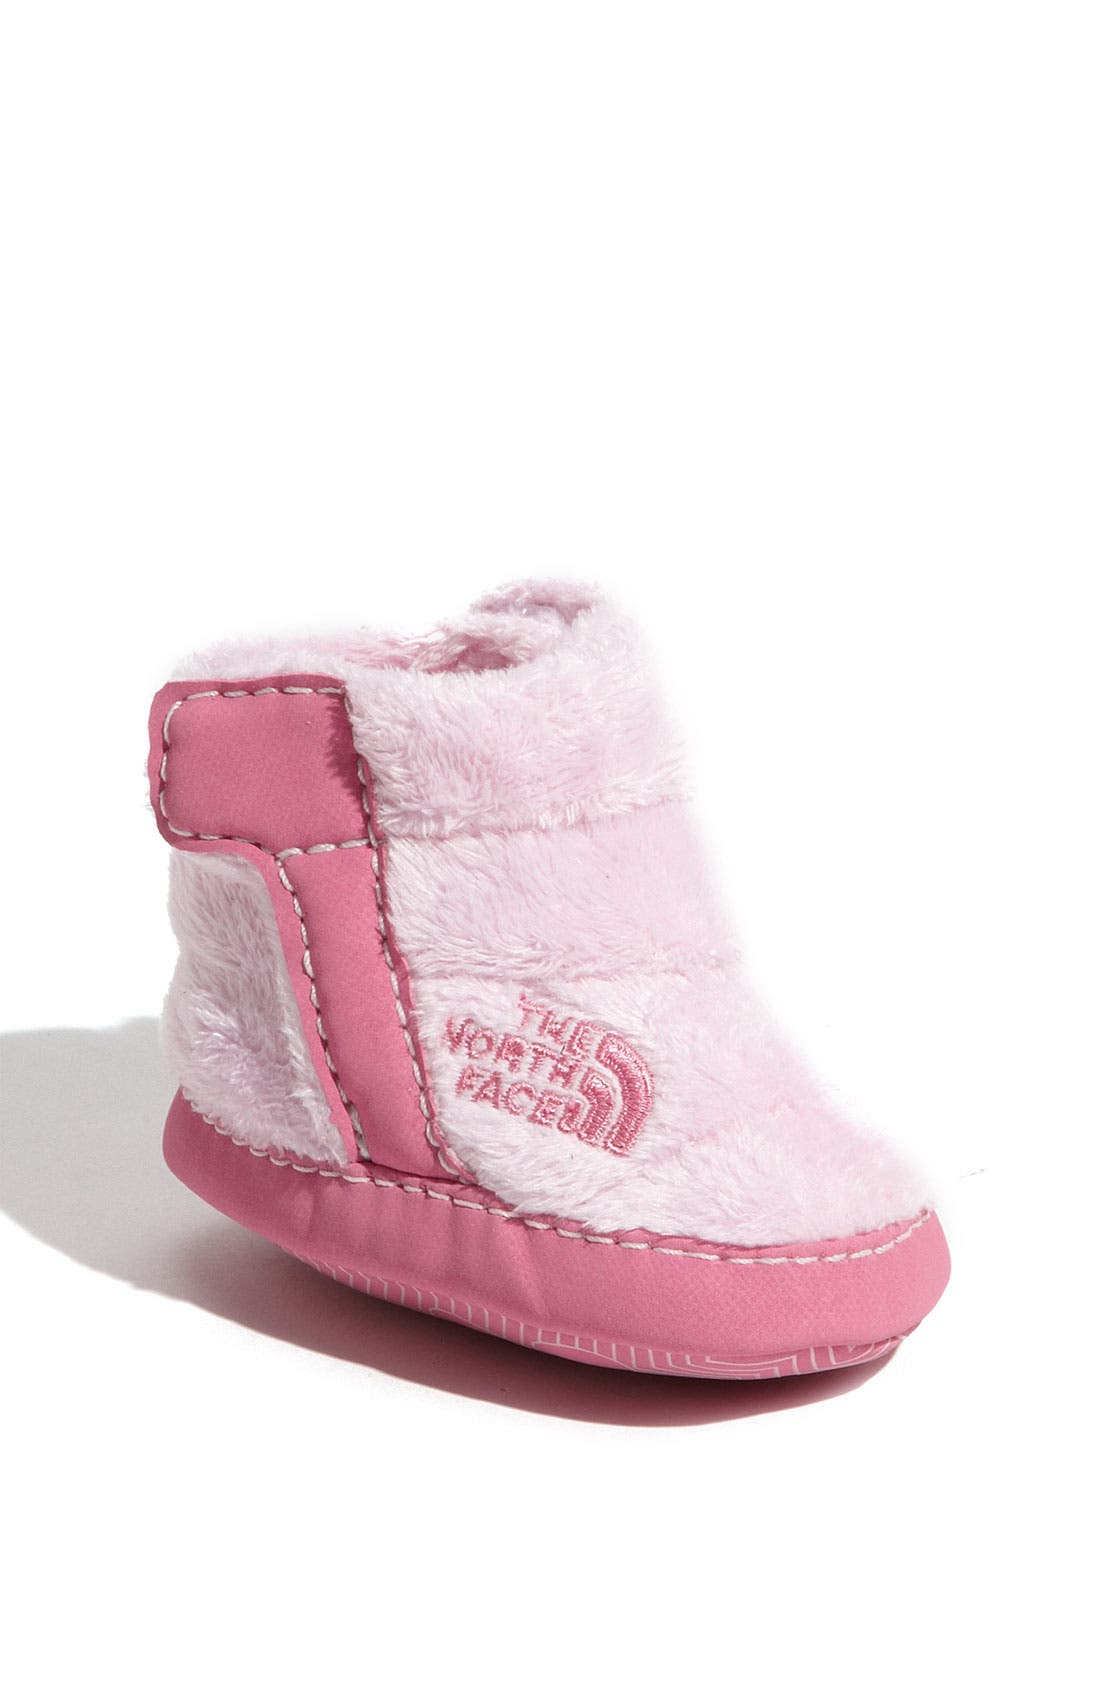 Alternate Image 1 Selected - The North Face Fleece Bootie (Baby)